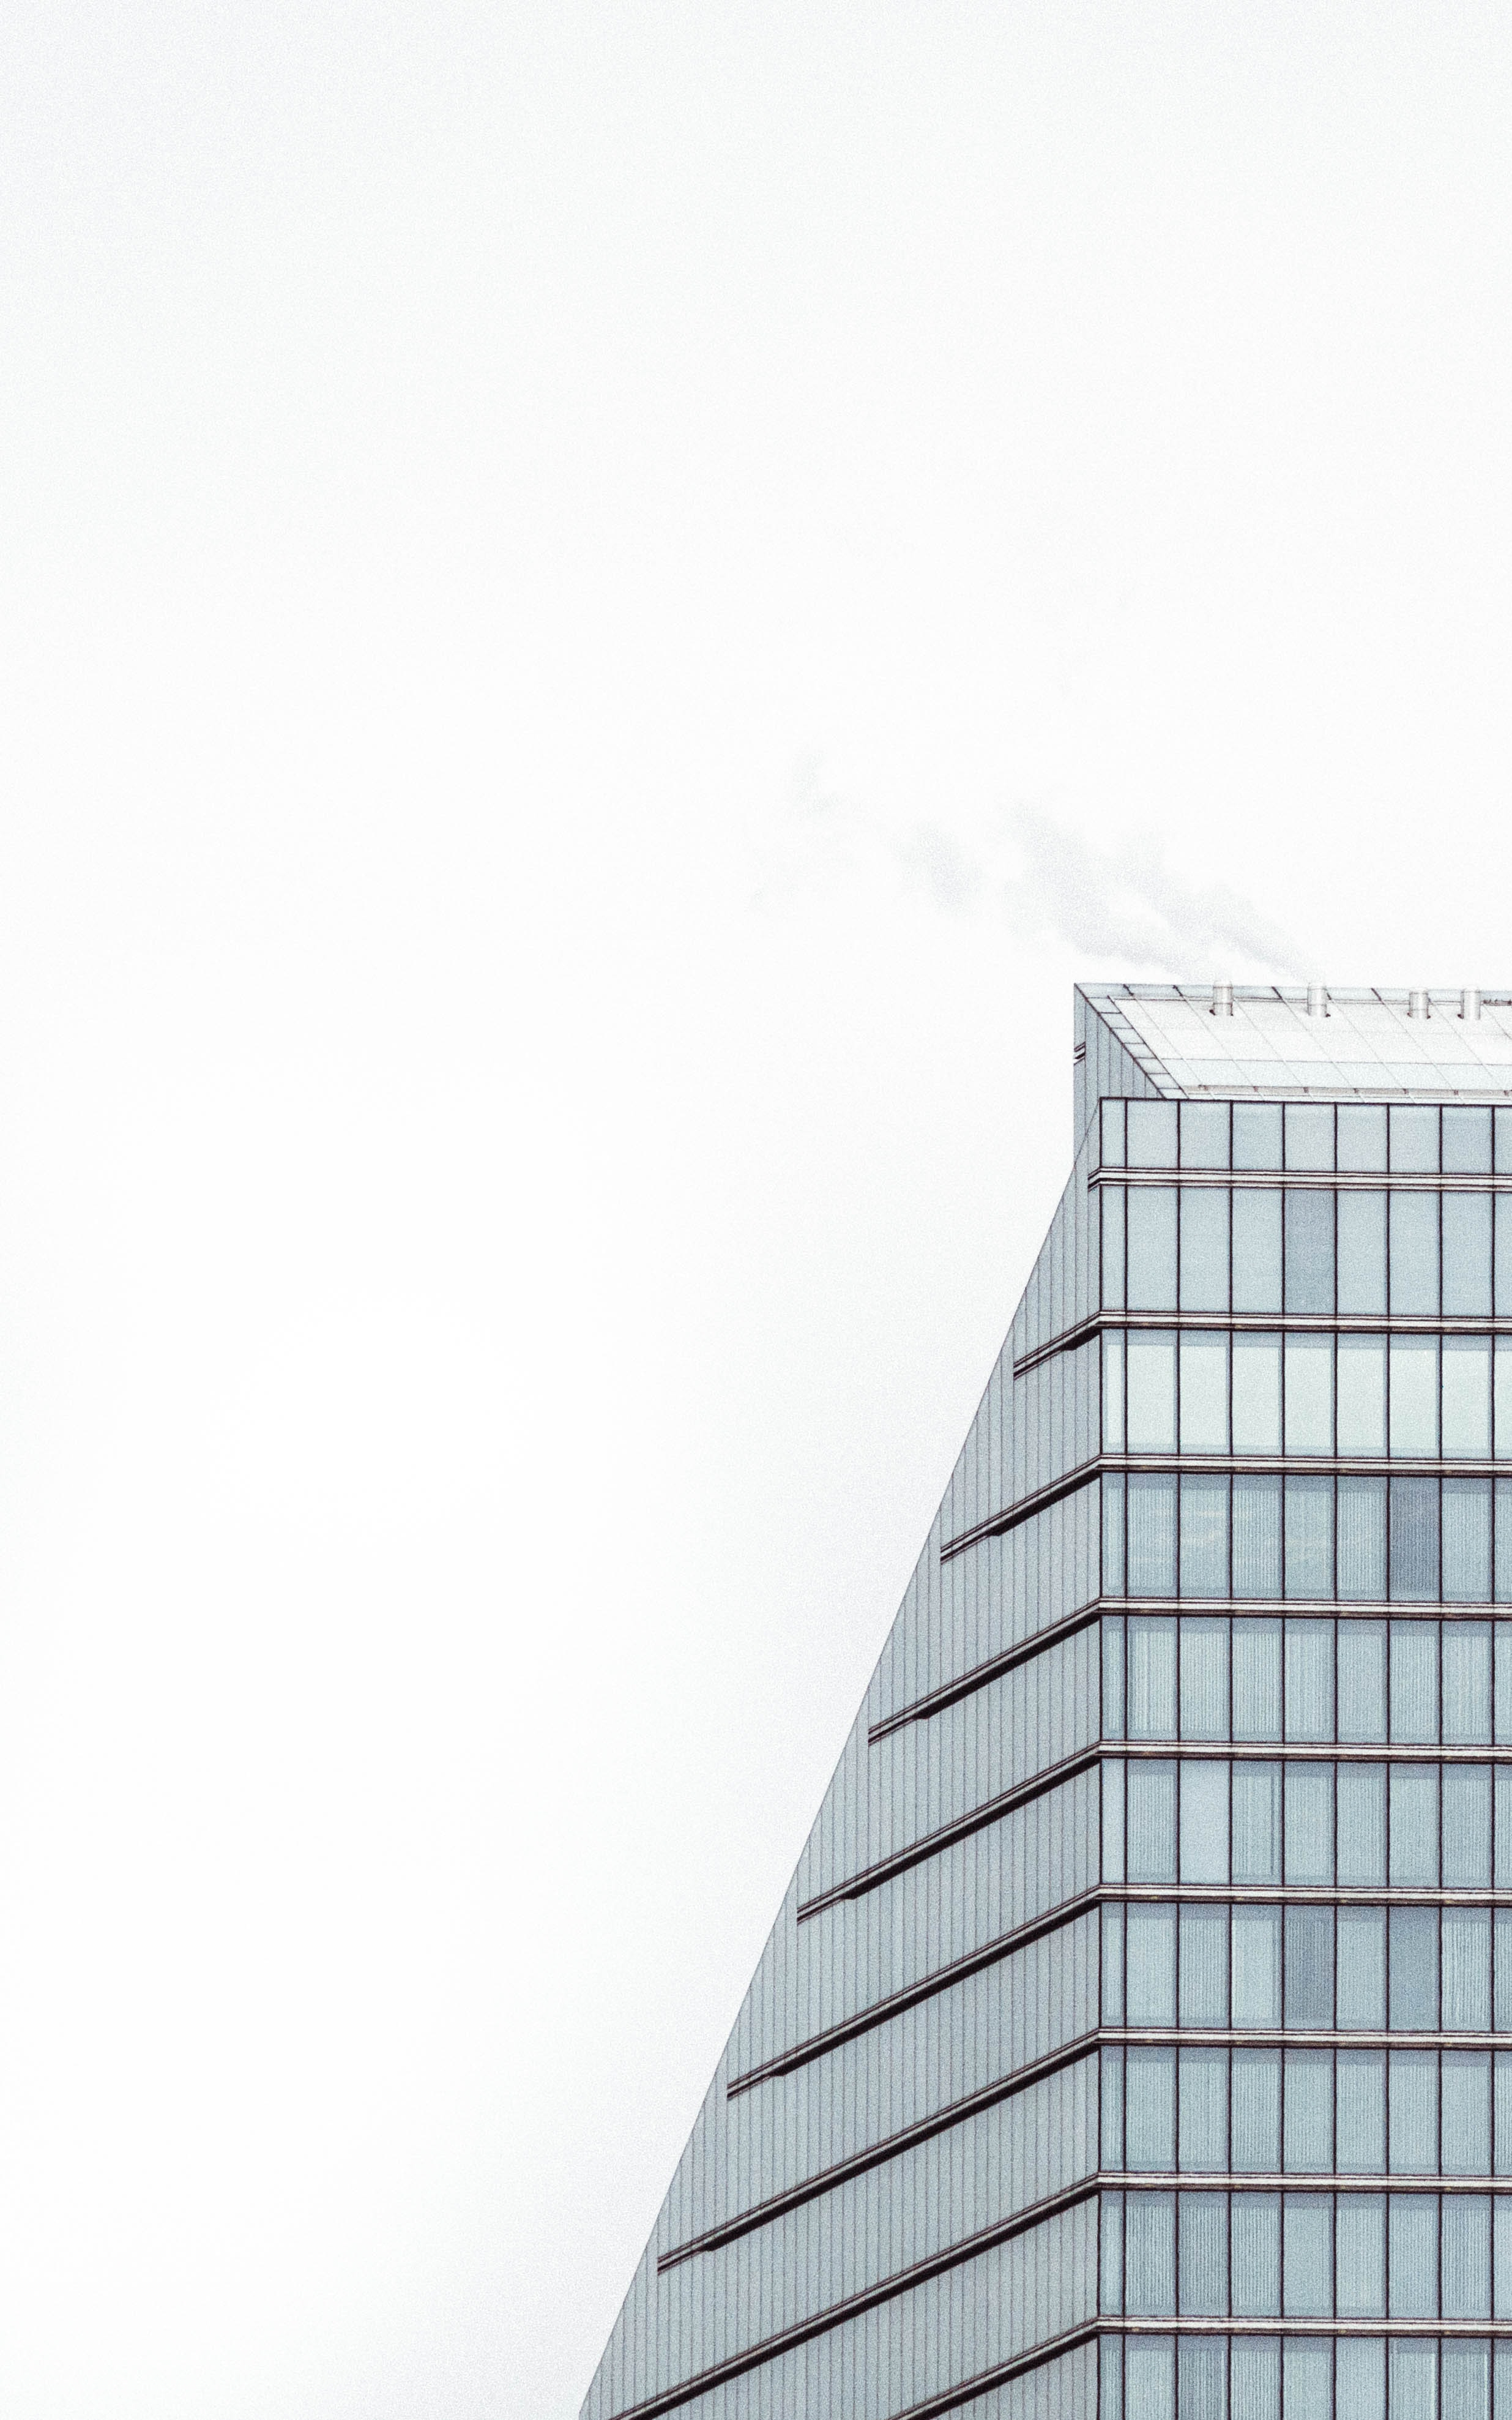 The edge of a building facade with glass-to-ceiling windows